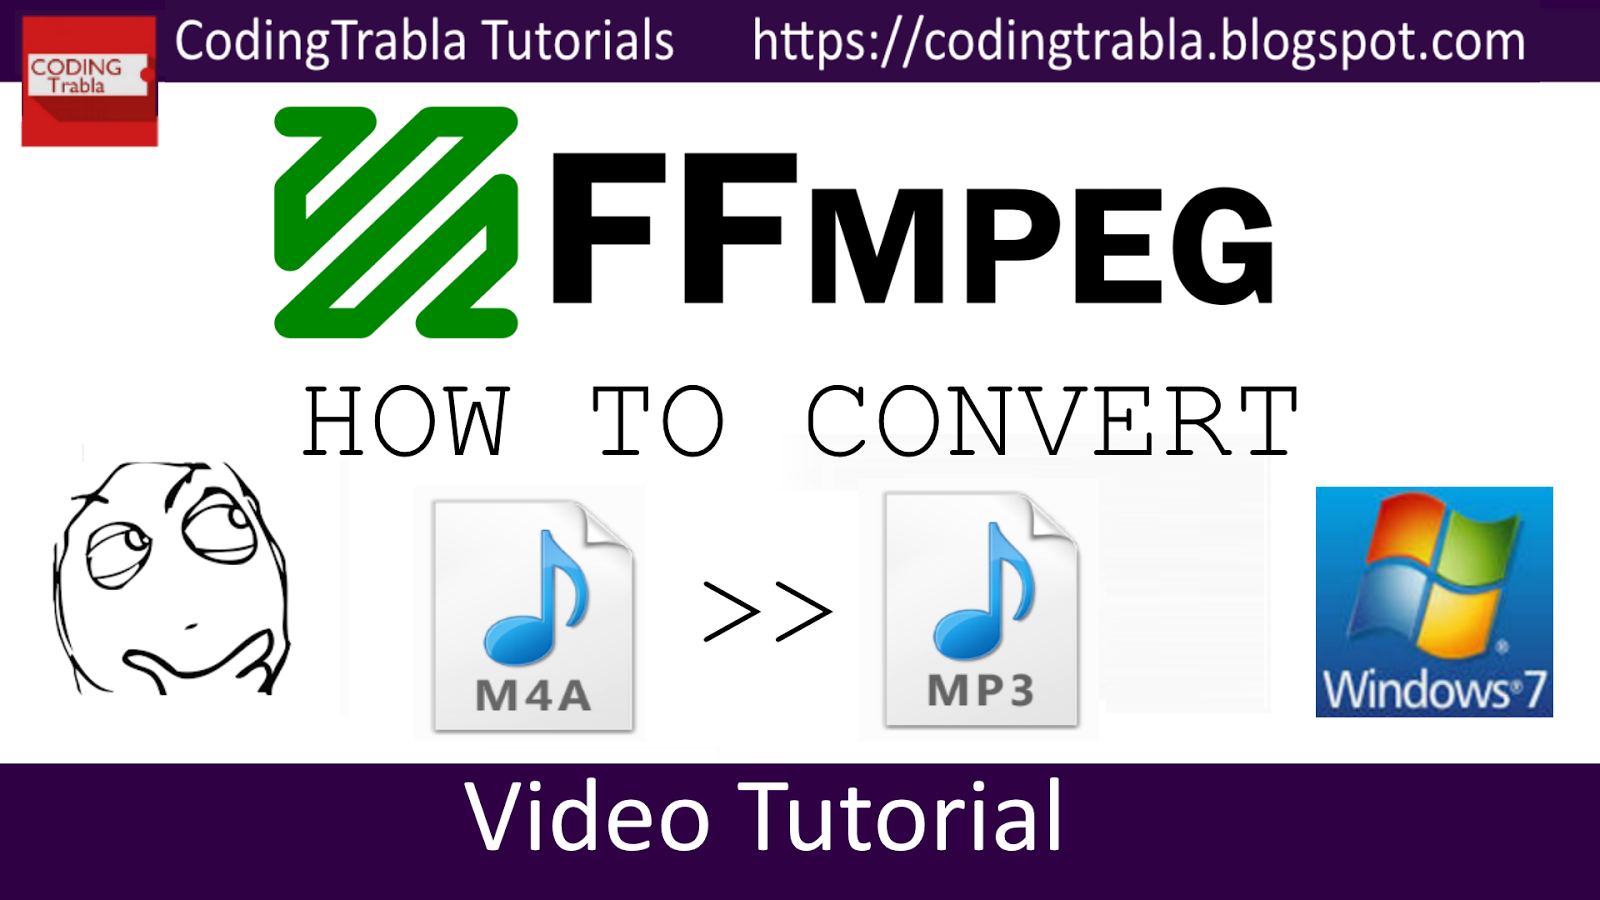 codingtrabla: How to convert m4a to mp3 audio using FFMPEG